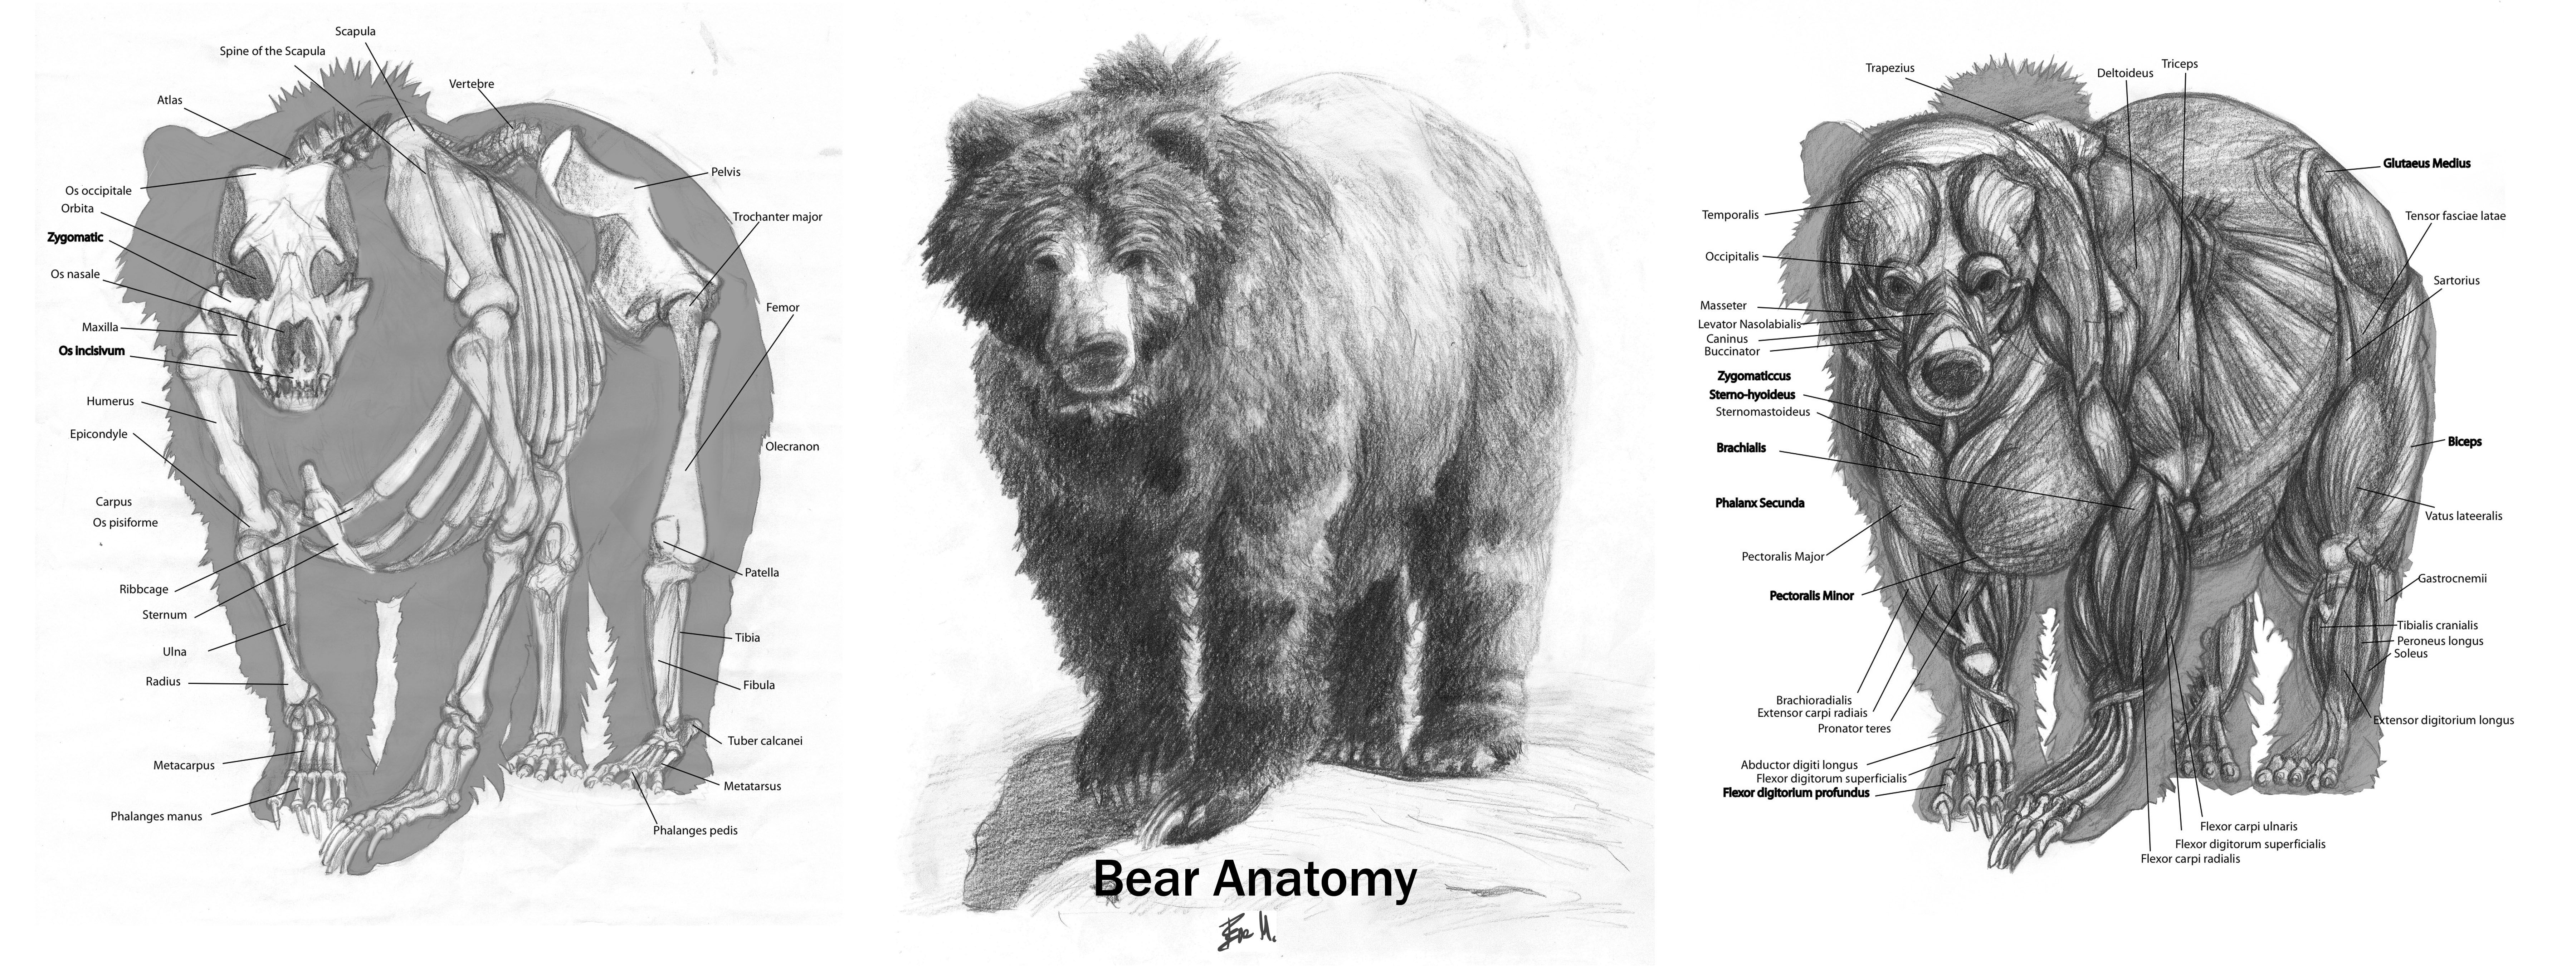 Grizzly bear anatomy | Resources - Animals | Pinterest | Animal ...